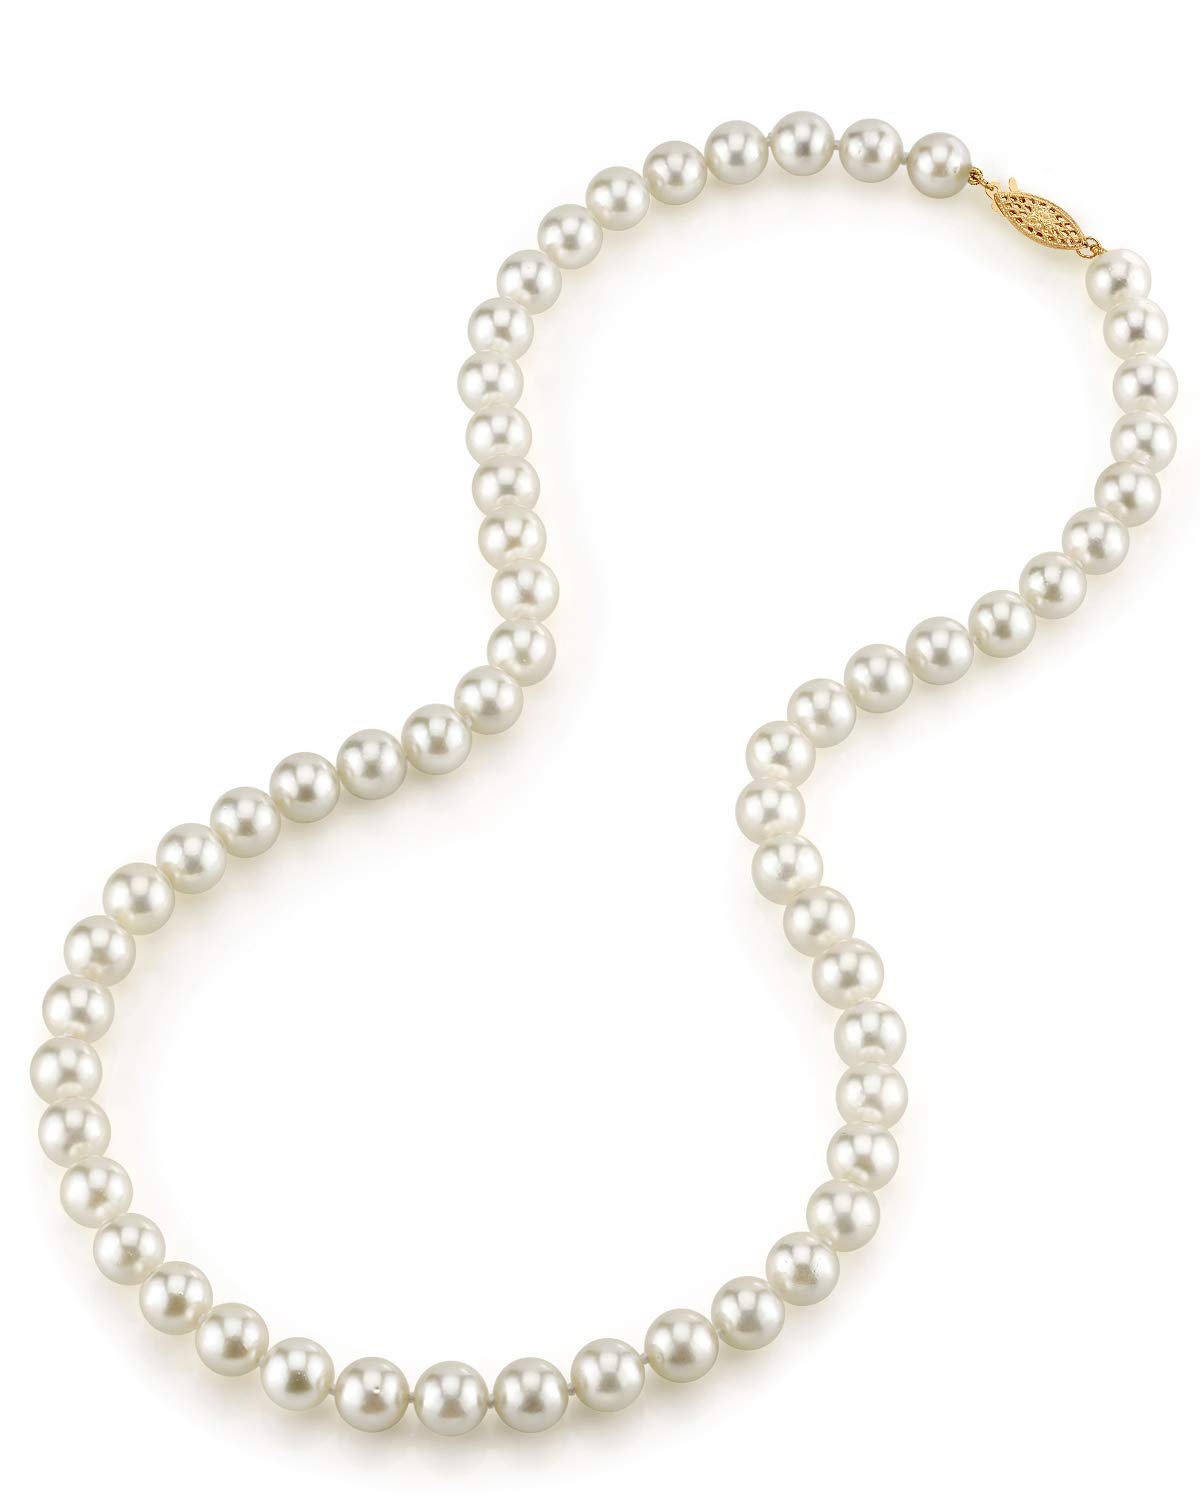 THE PEARL SOURCE 14K Gold 7.0-7.5mm AAA Quality Round Genuine White Japanese Akoya Saltwater Cultured Pearl Necklace in 18'' Princess Length for Women by The Pearl Source